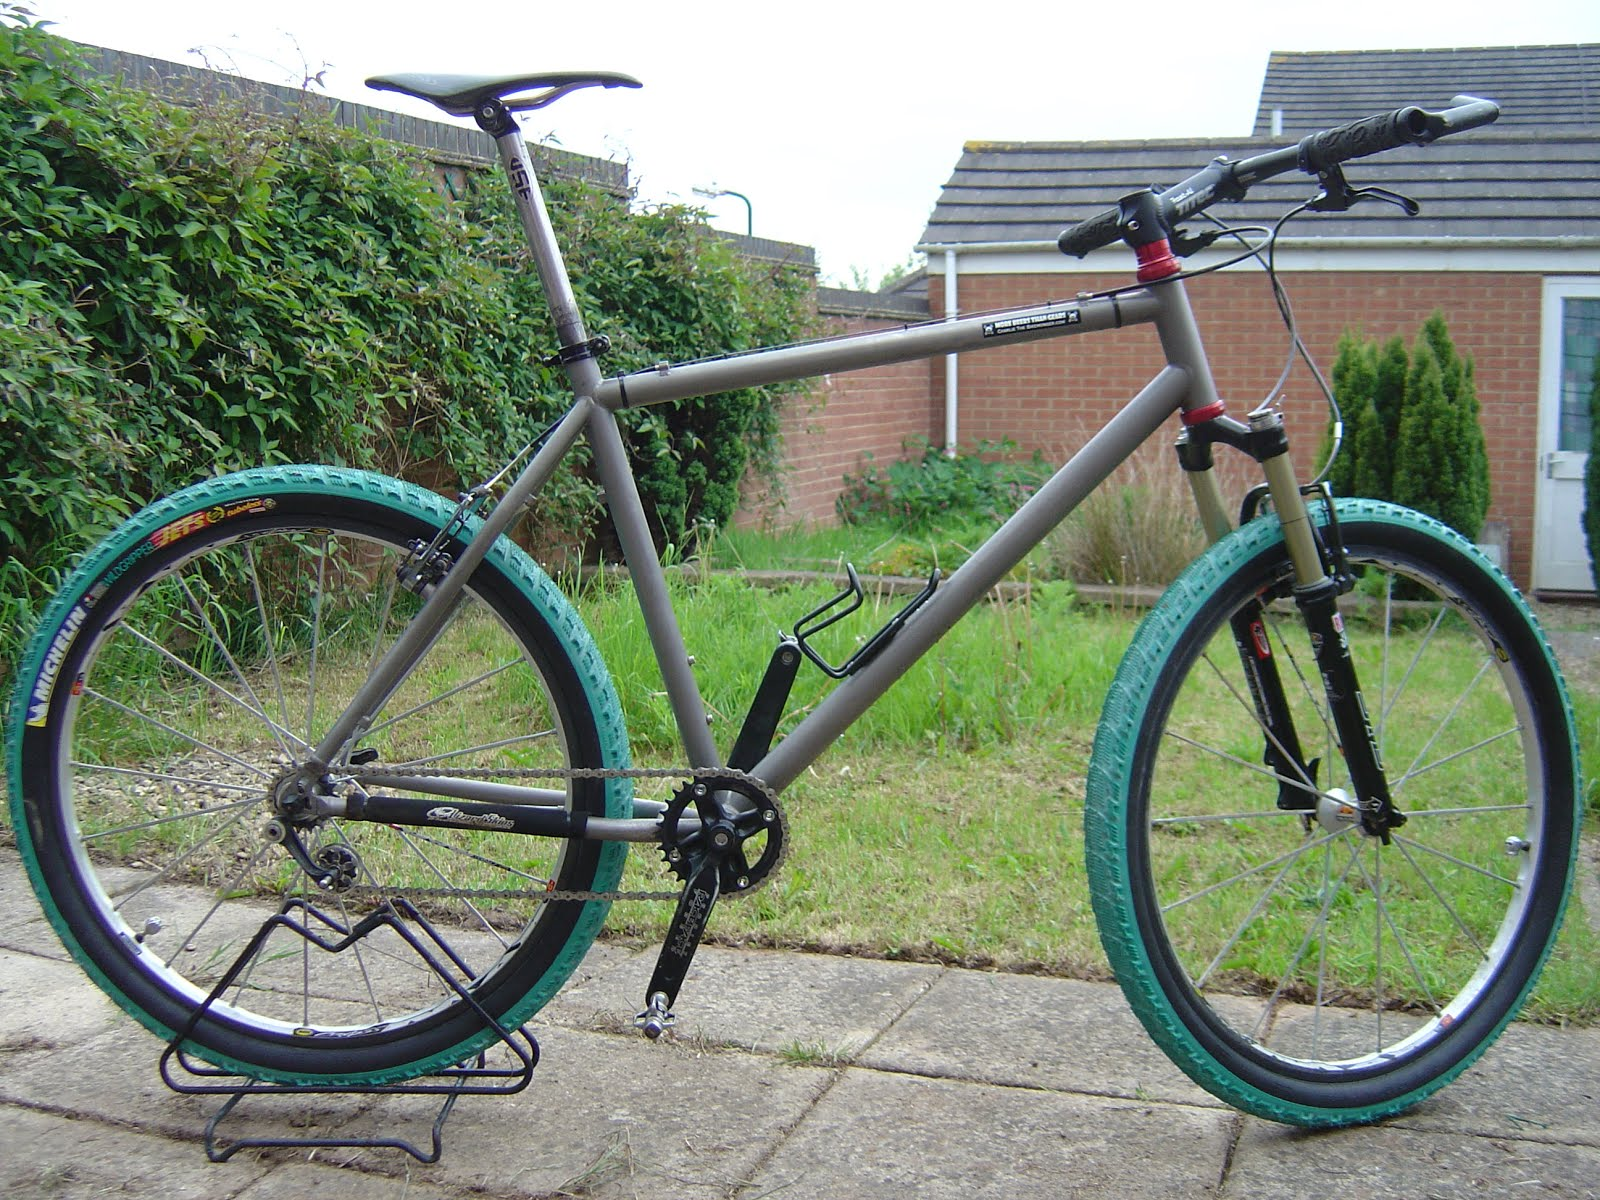 Paul's Viper Fugitif (recovered), Giant TCR2, Raleigh Cougar